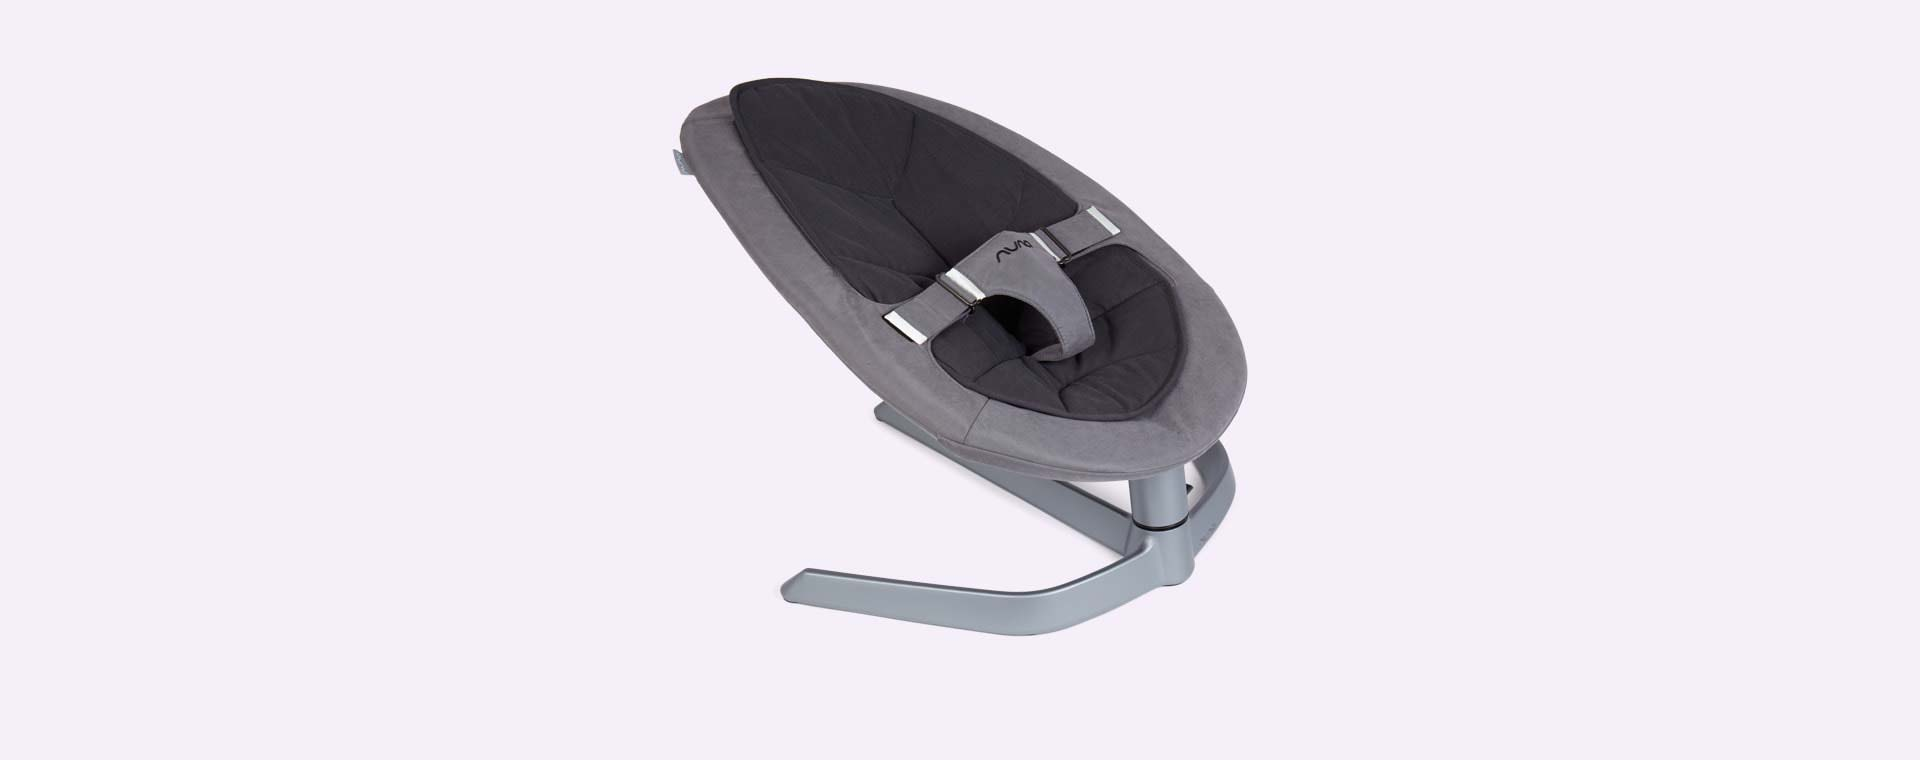 749b26f4edb Buy the Nuna Leaf Bouncer at KIDLY UK